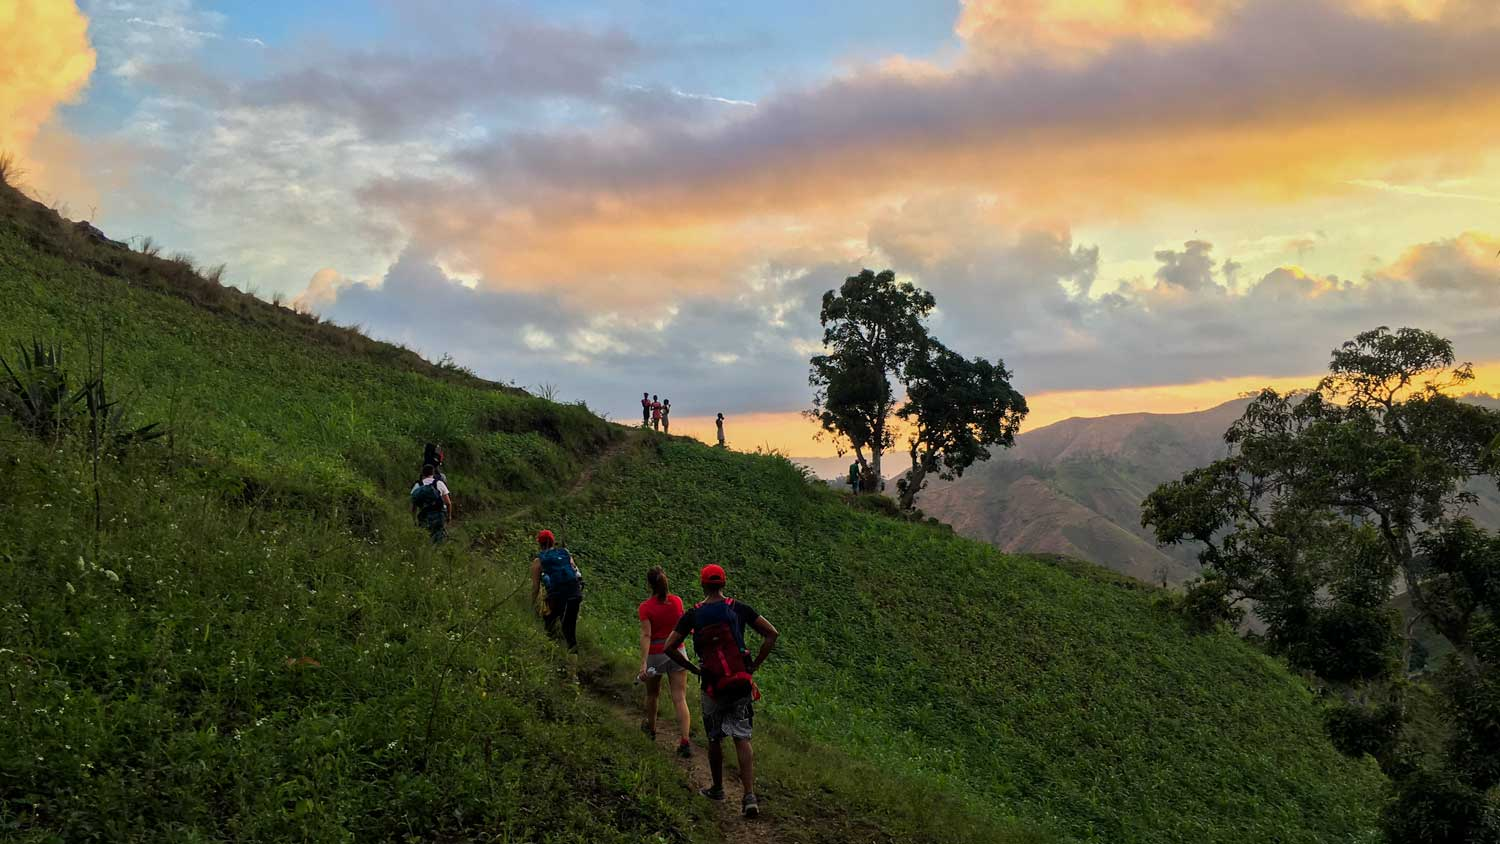 People hiking across a hill in Grandou, Haiti